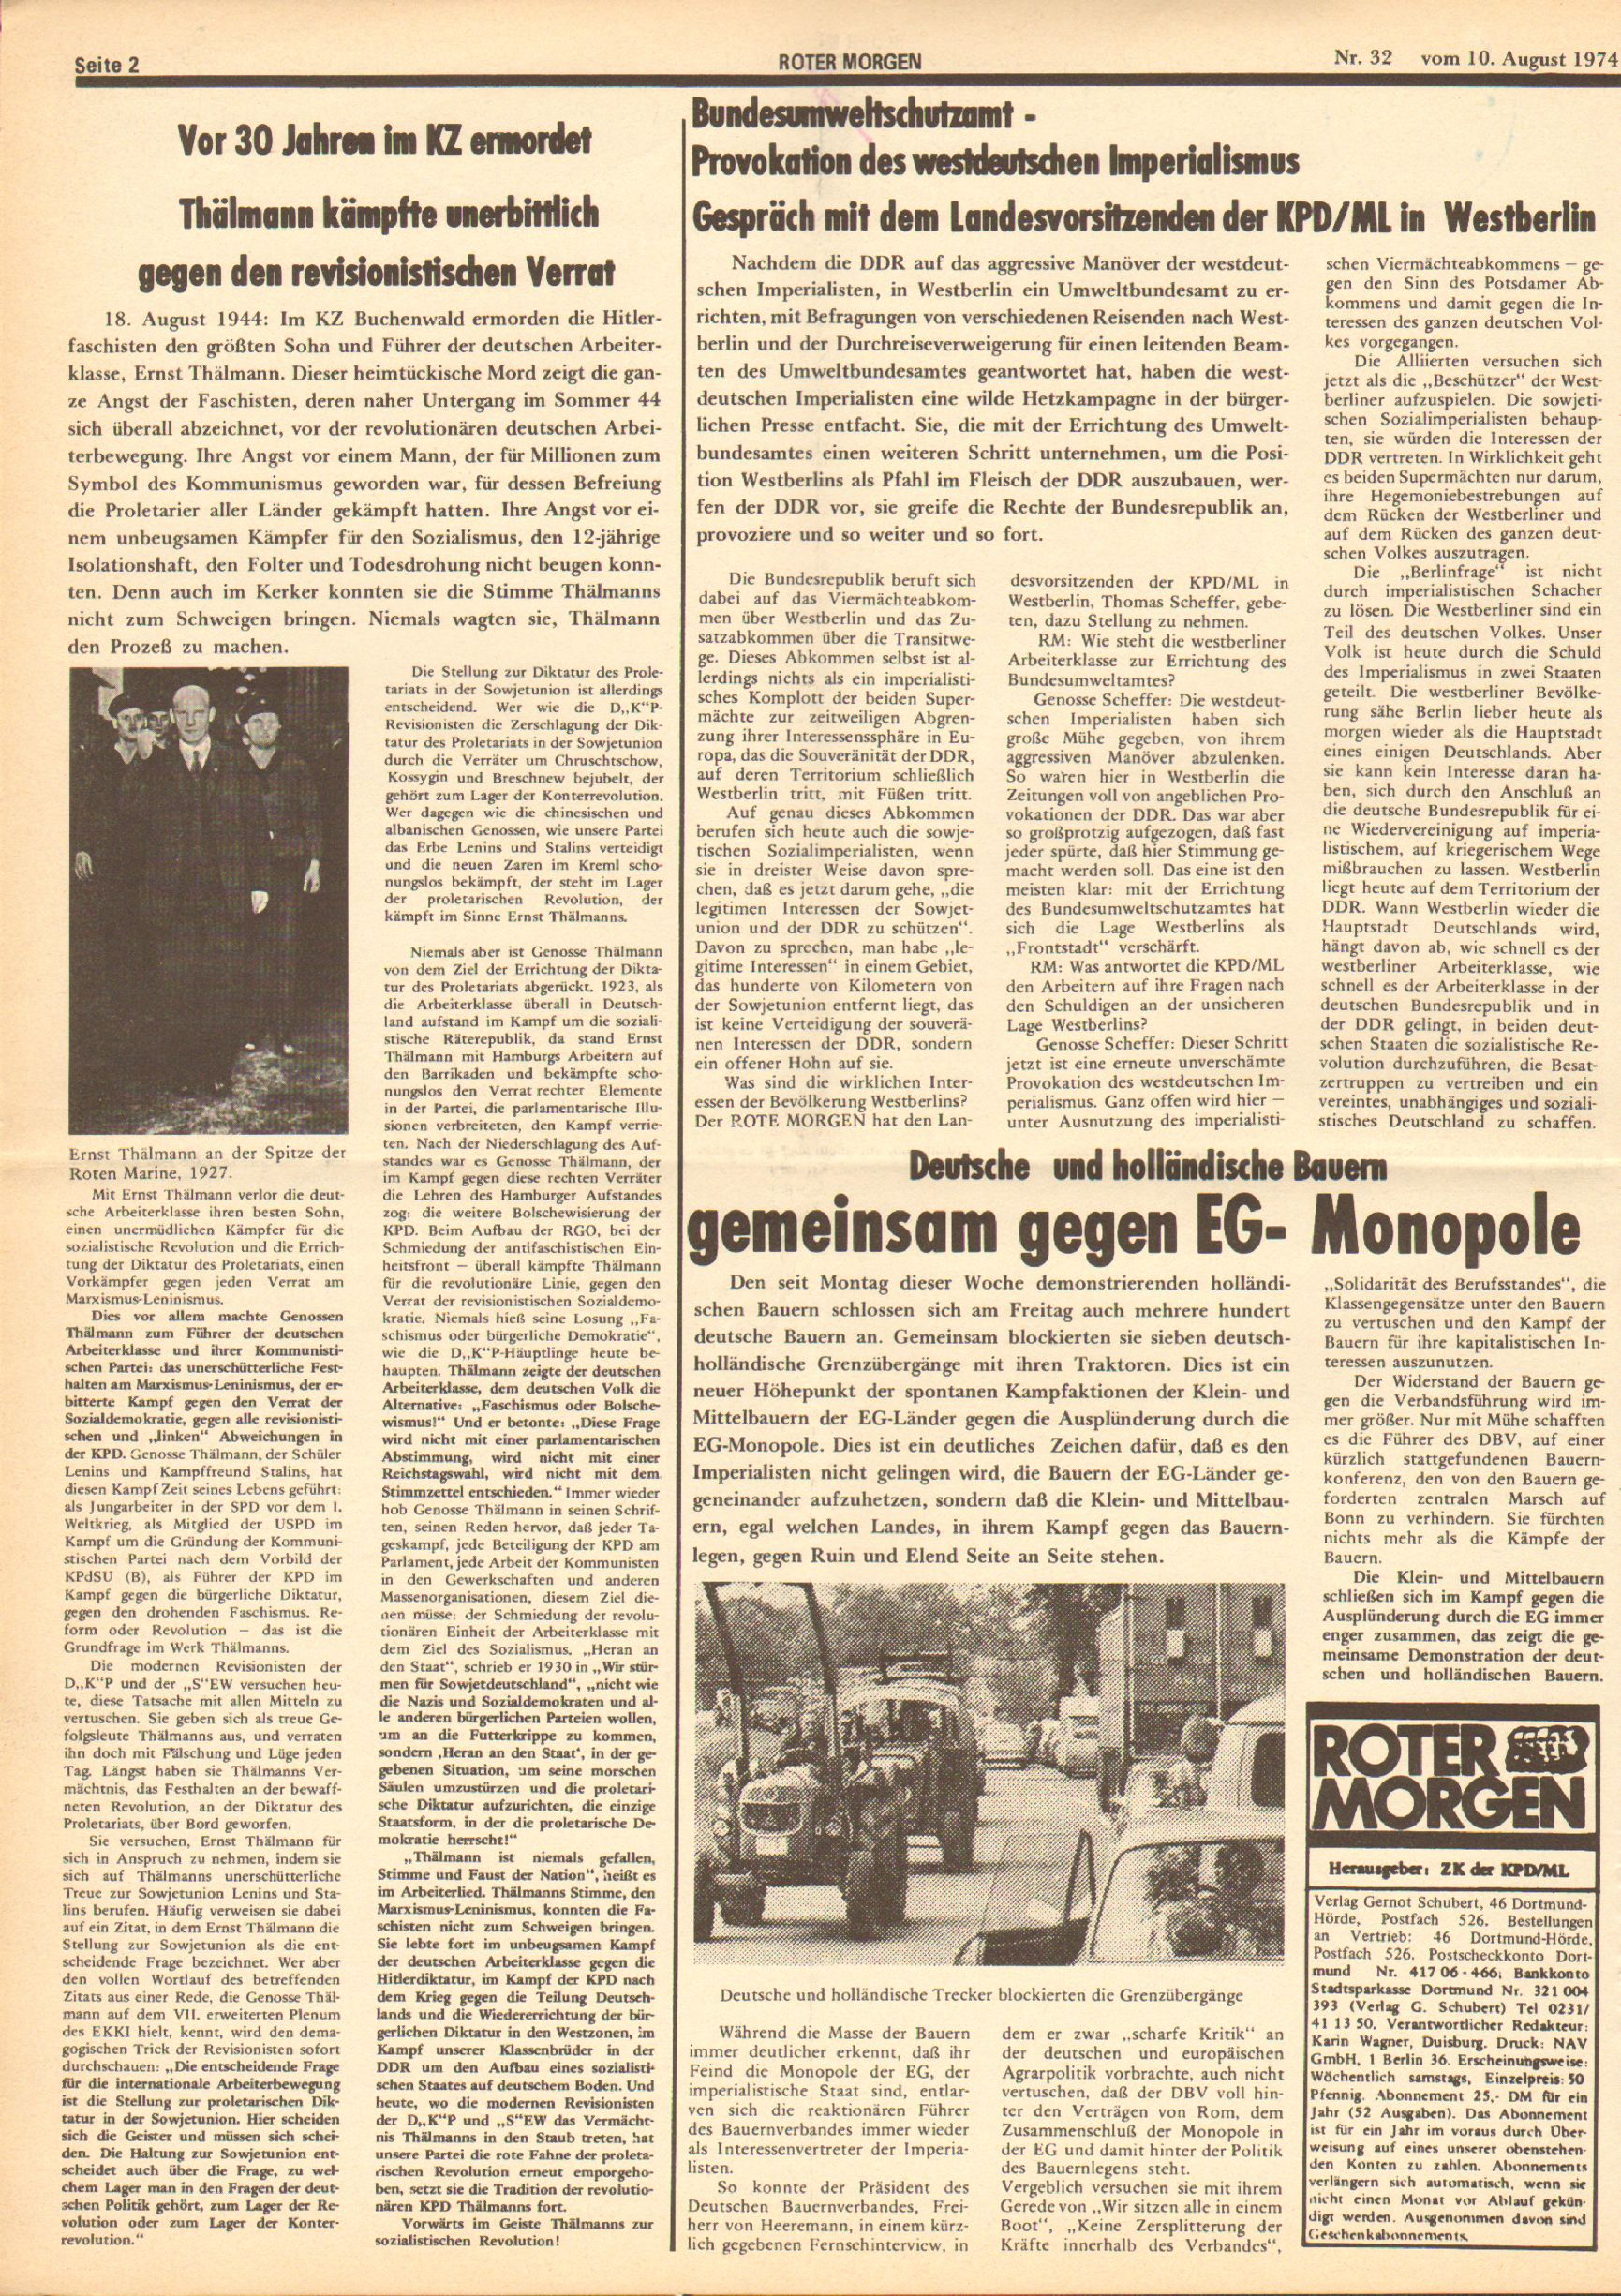 Roter Morgen, 8. Jg., 10. August 1974, Nr. 32, Seite 2